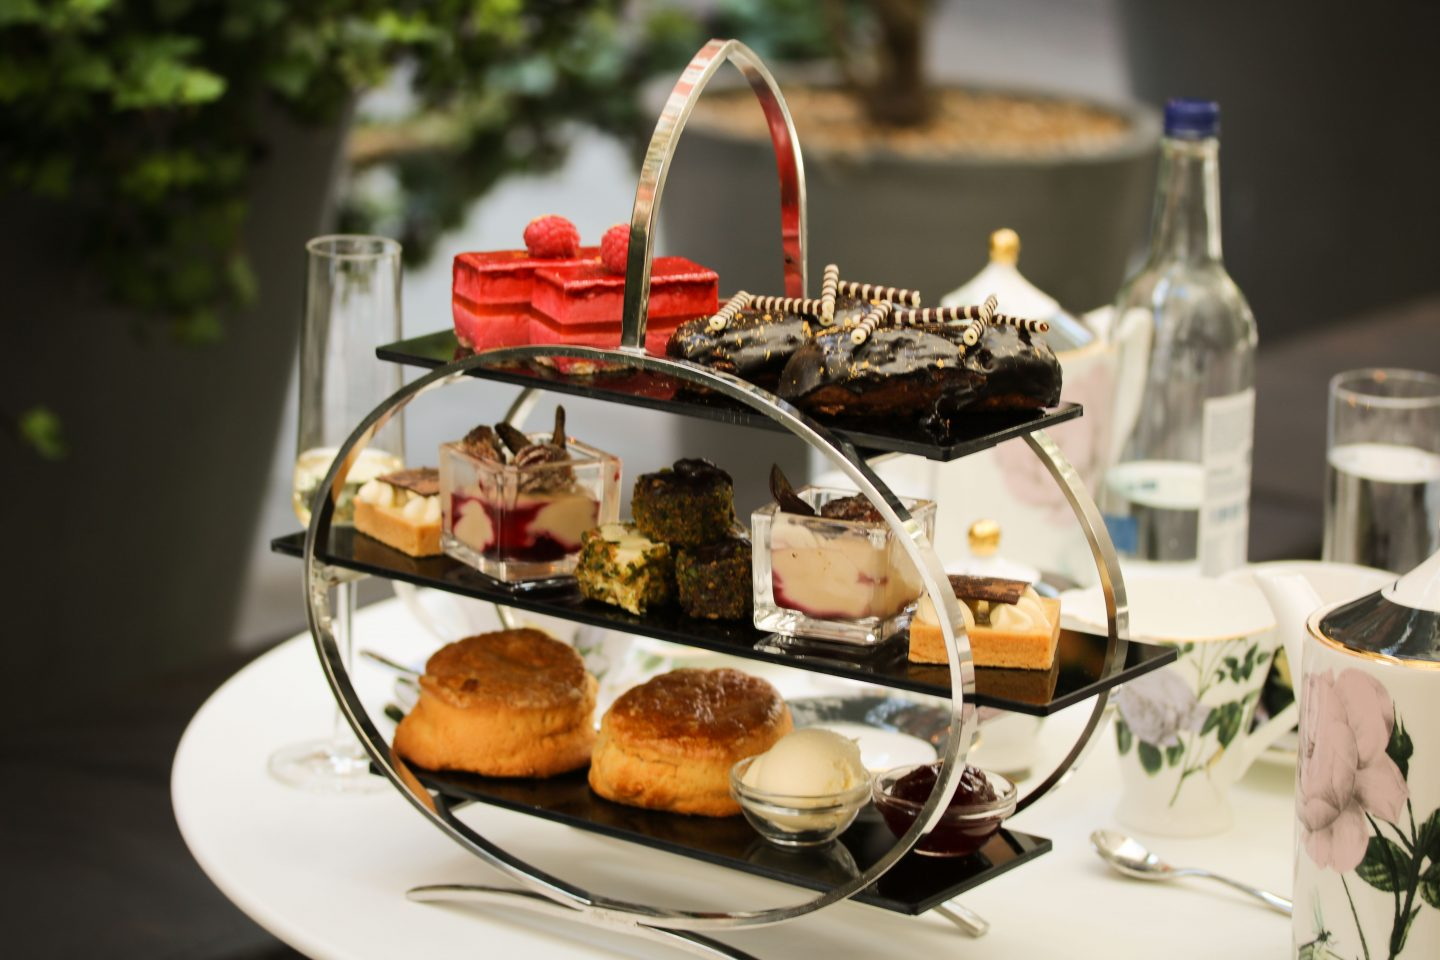 Afternoon tea at St Martins Lane hotel